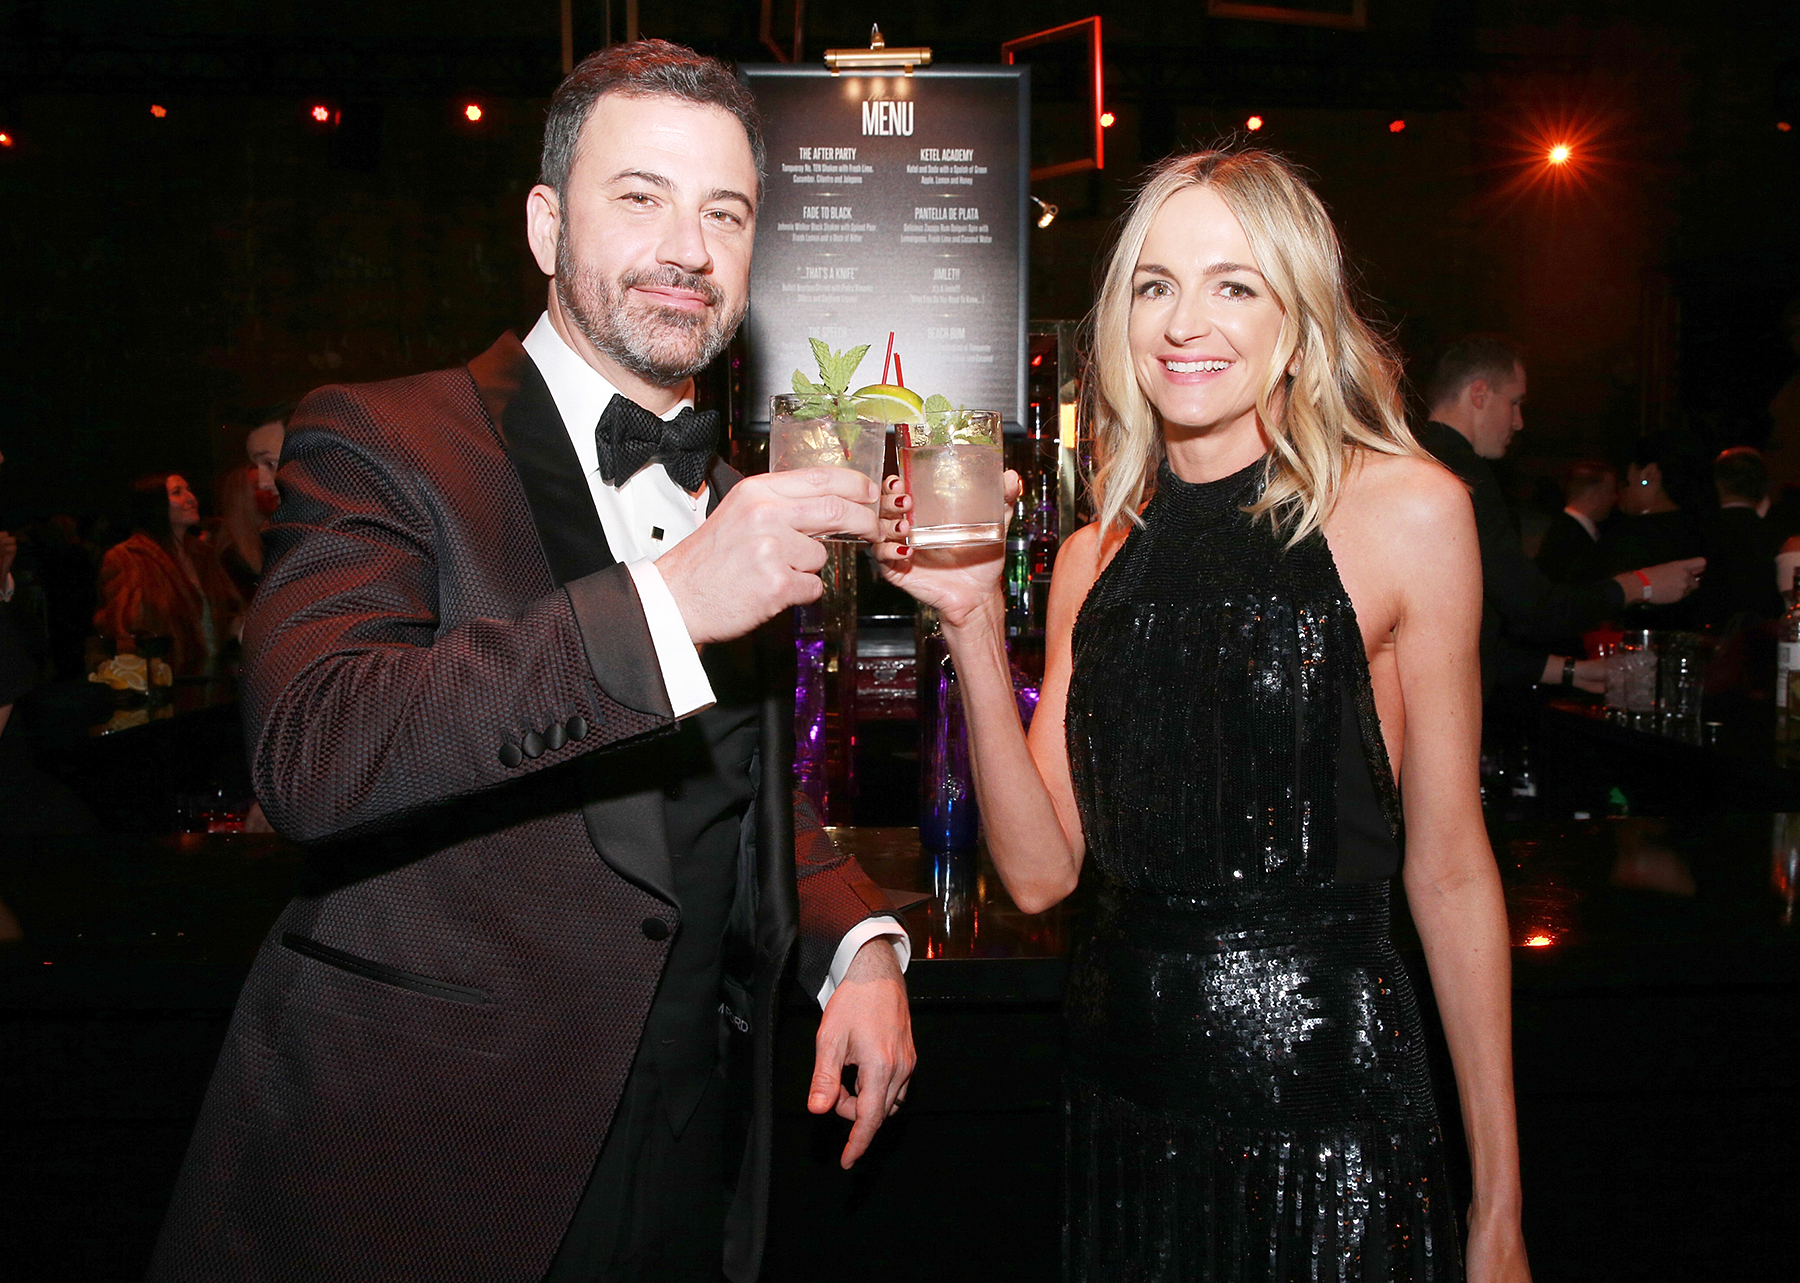 Jimmy Kimmel Molly McNearney Oscars 2018 after party